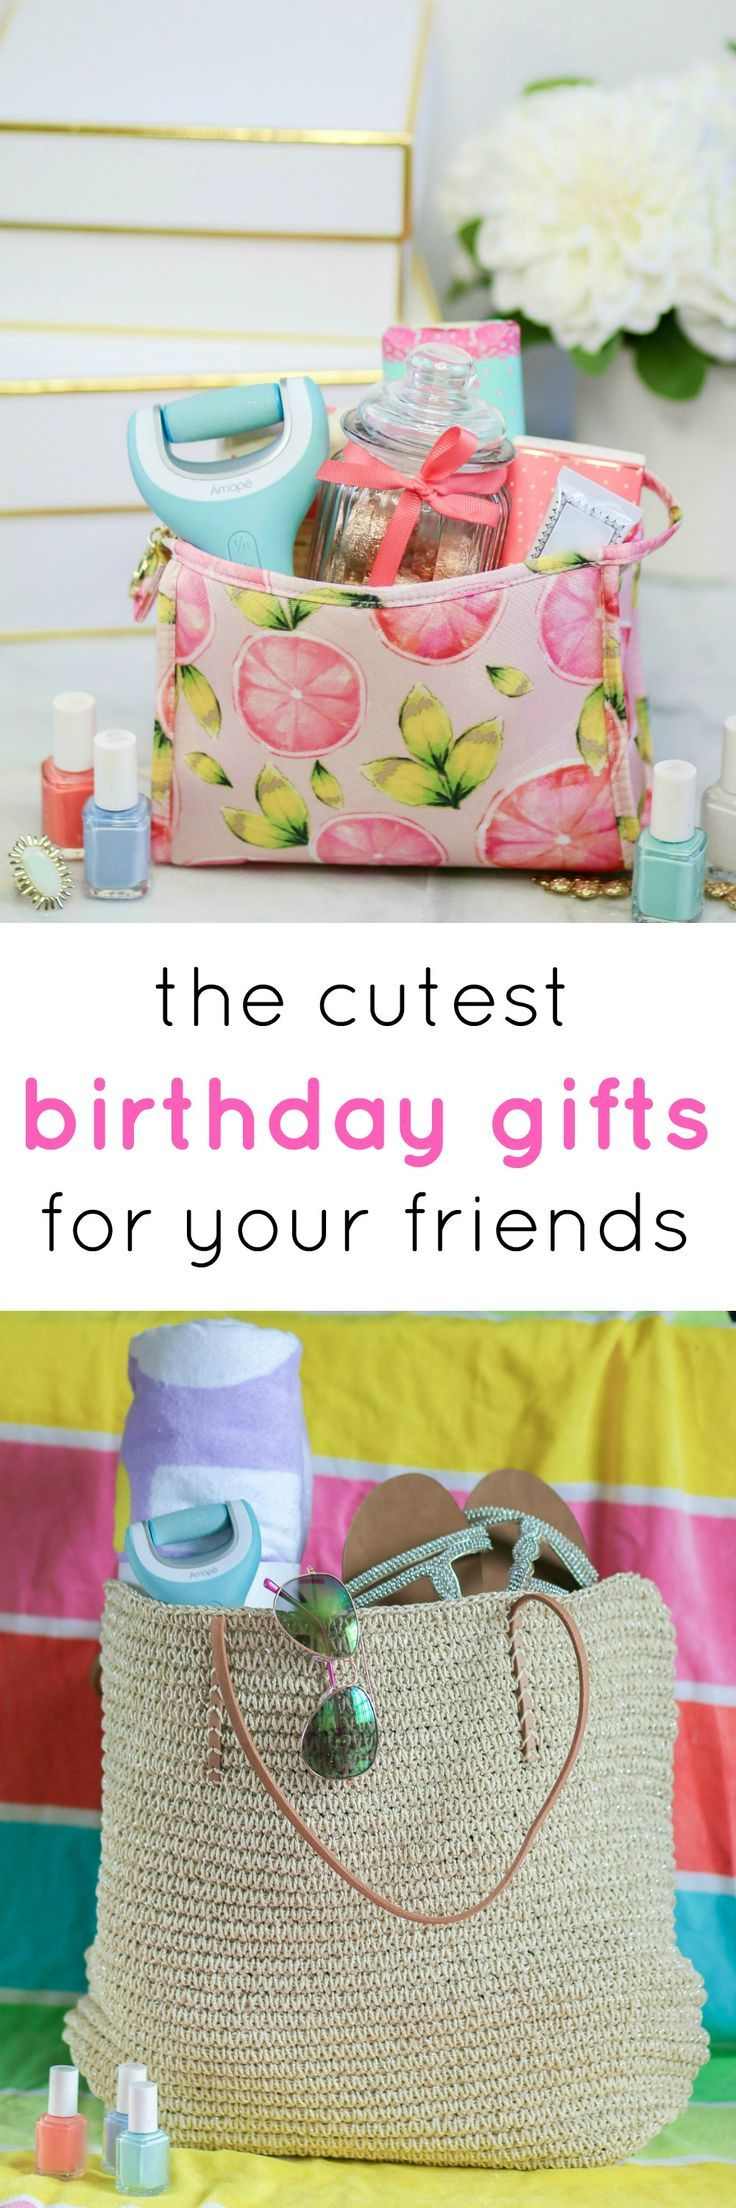 298 best The Best Gift Ideas images on Pinterest | Holiday gifts ...